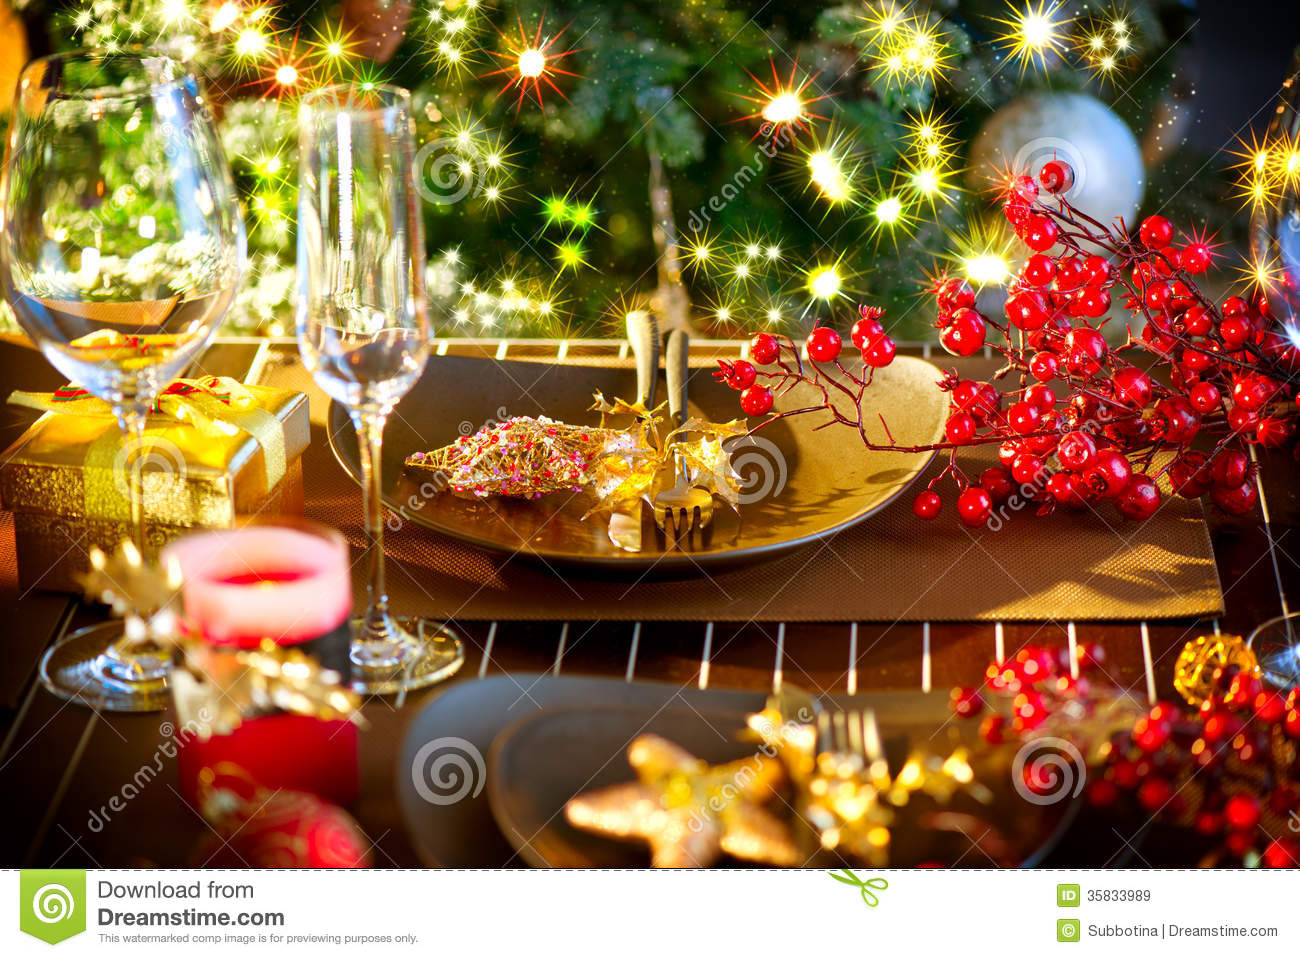 christmas holiday table setting stock image image 35833989. Black Bedroom Furniture Sets. Home Design Ideas